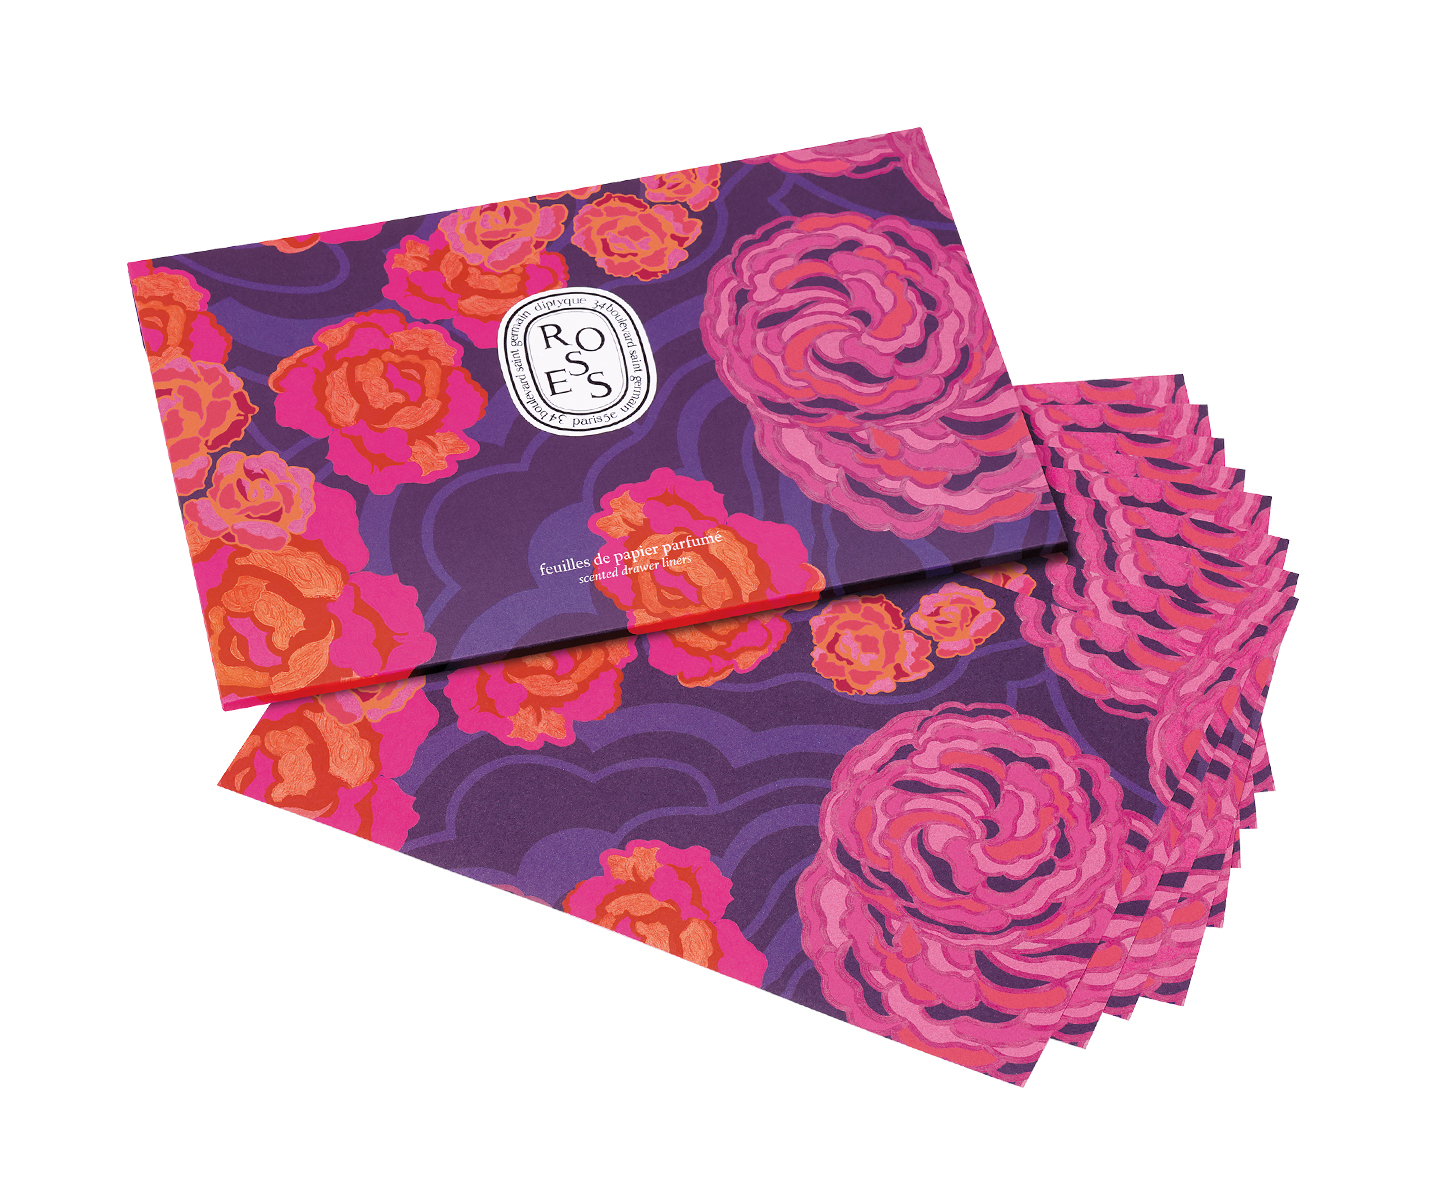 Roses Scented Drawer Liners